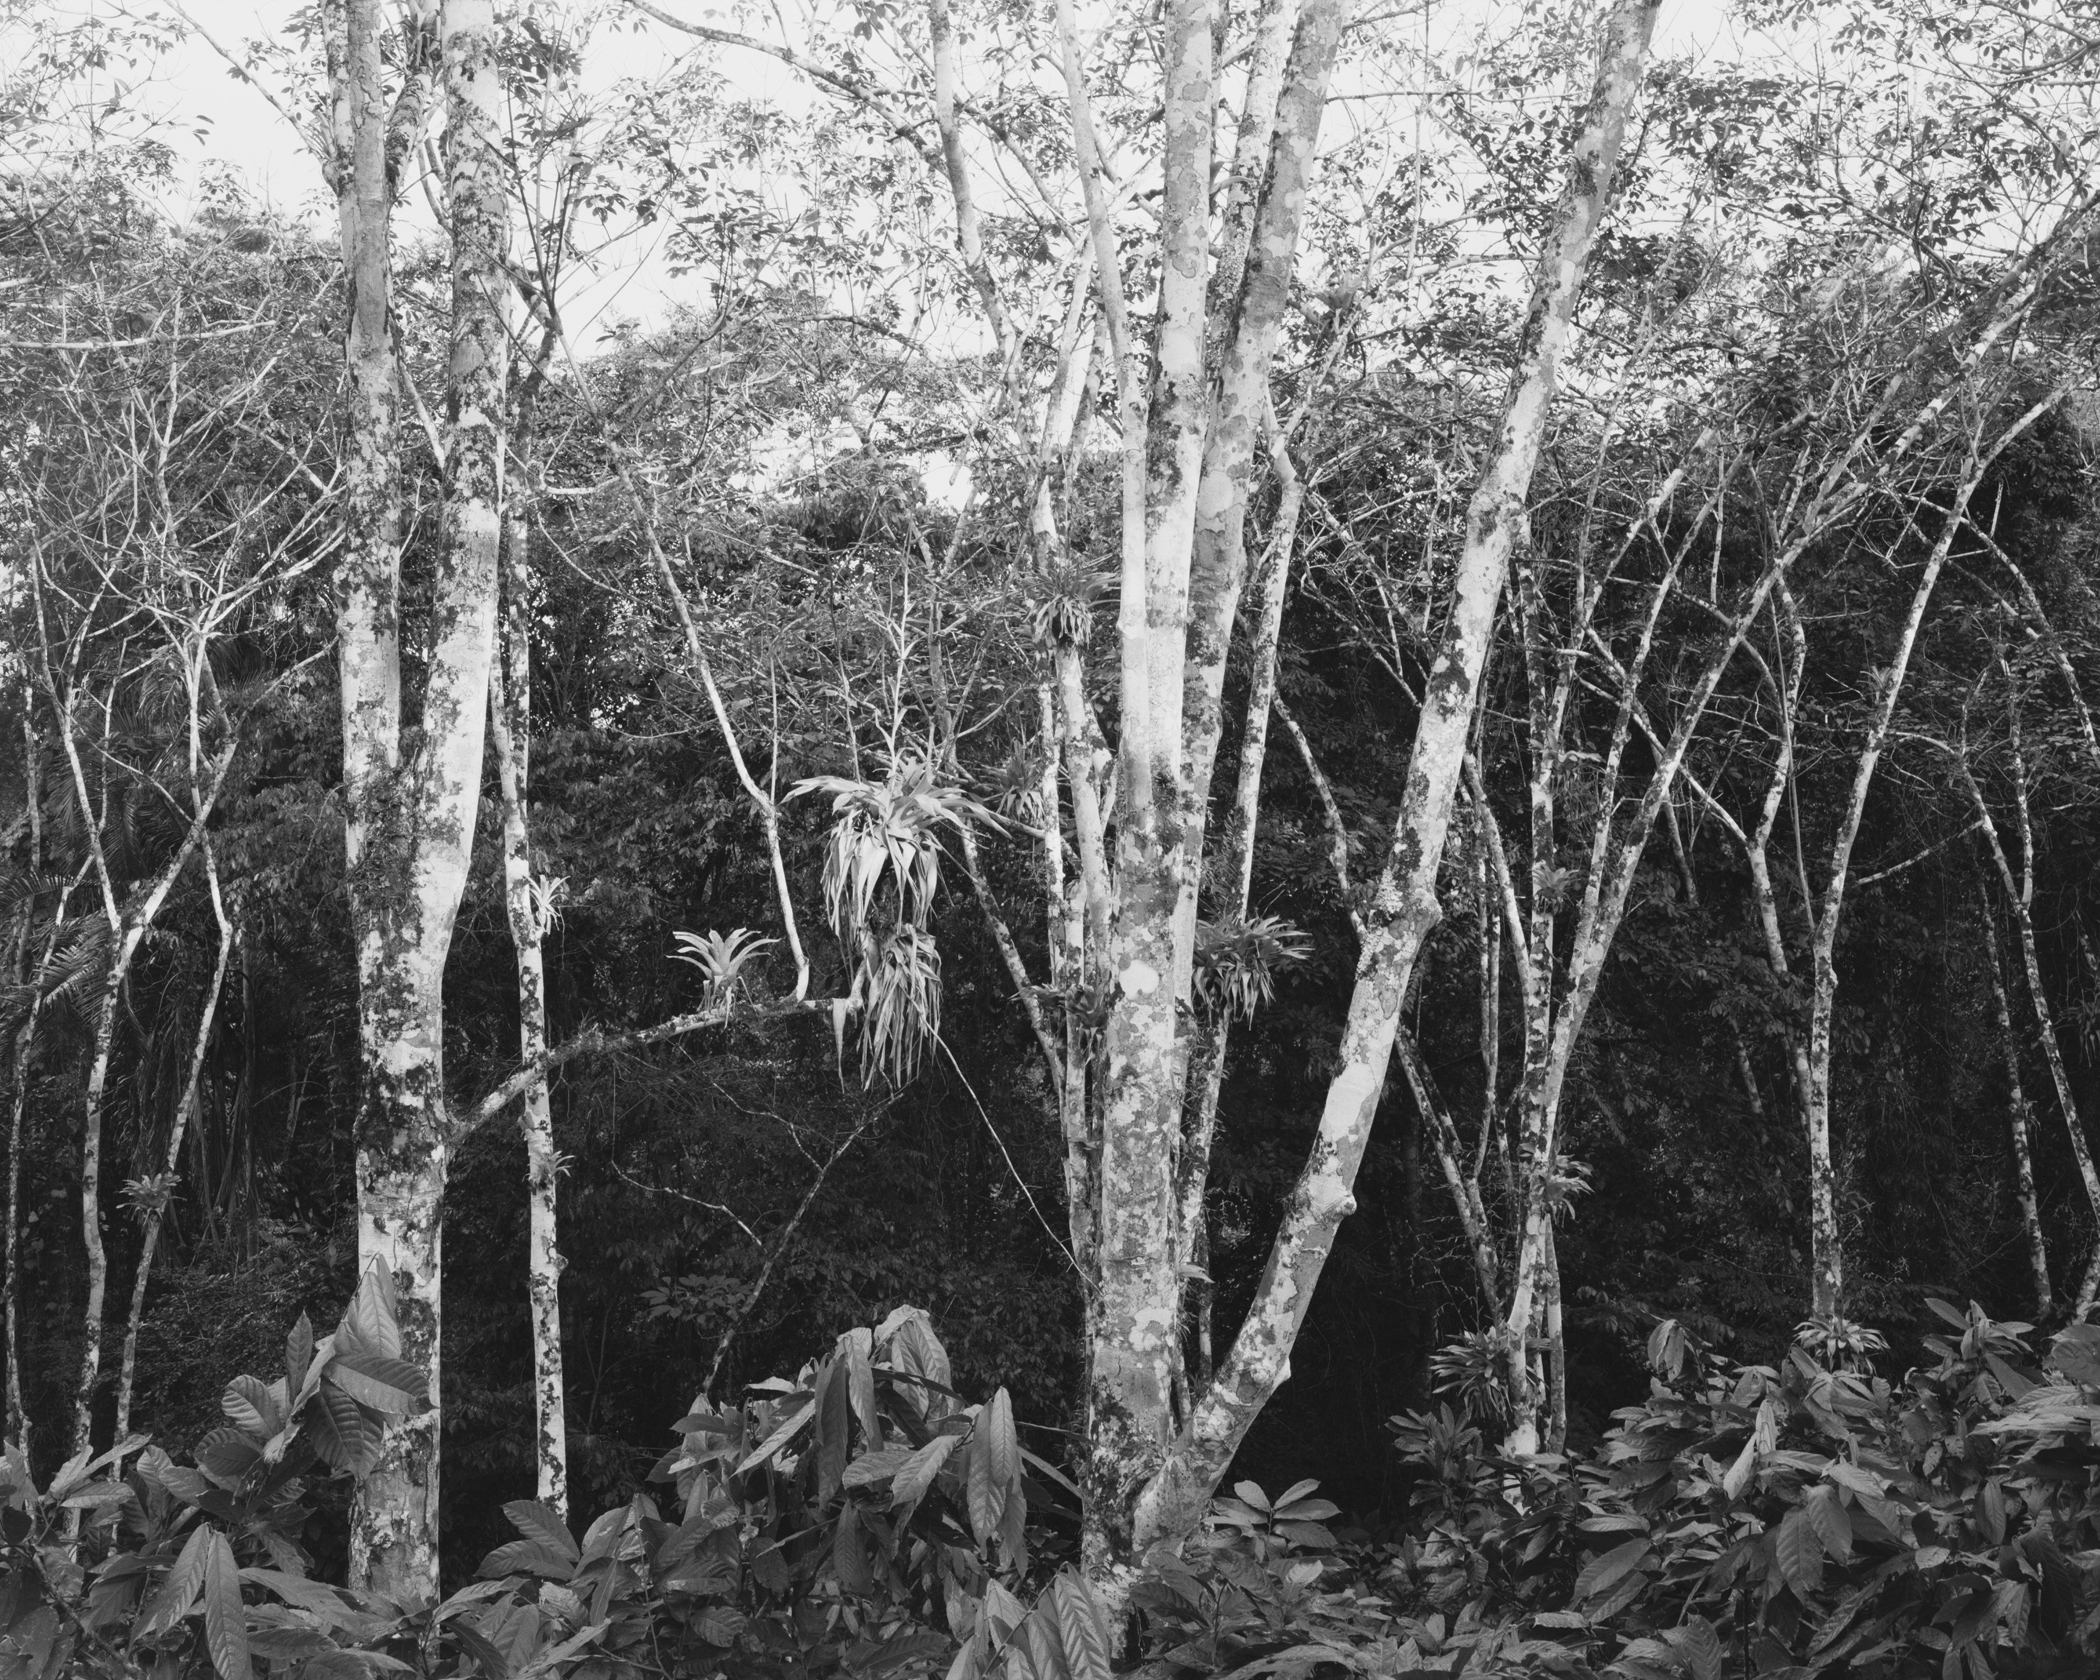 Atlantic Forest No. 1 (rubber trees with epiphytes), May, 2014, Bahia, Brazil. 2014/2018